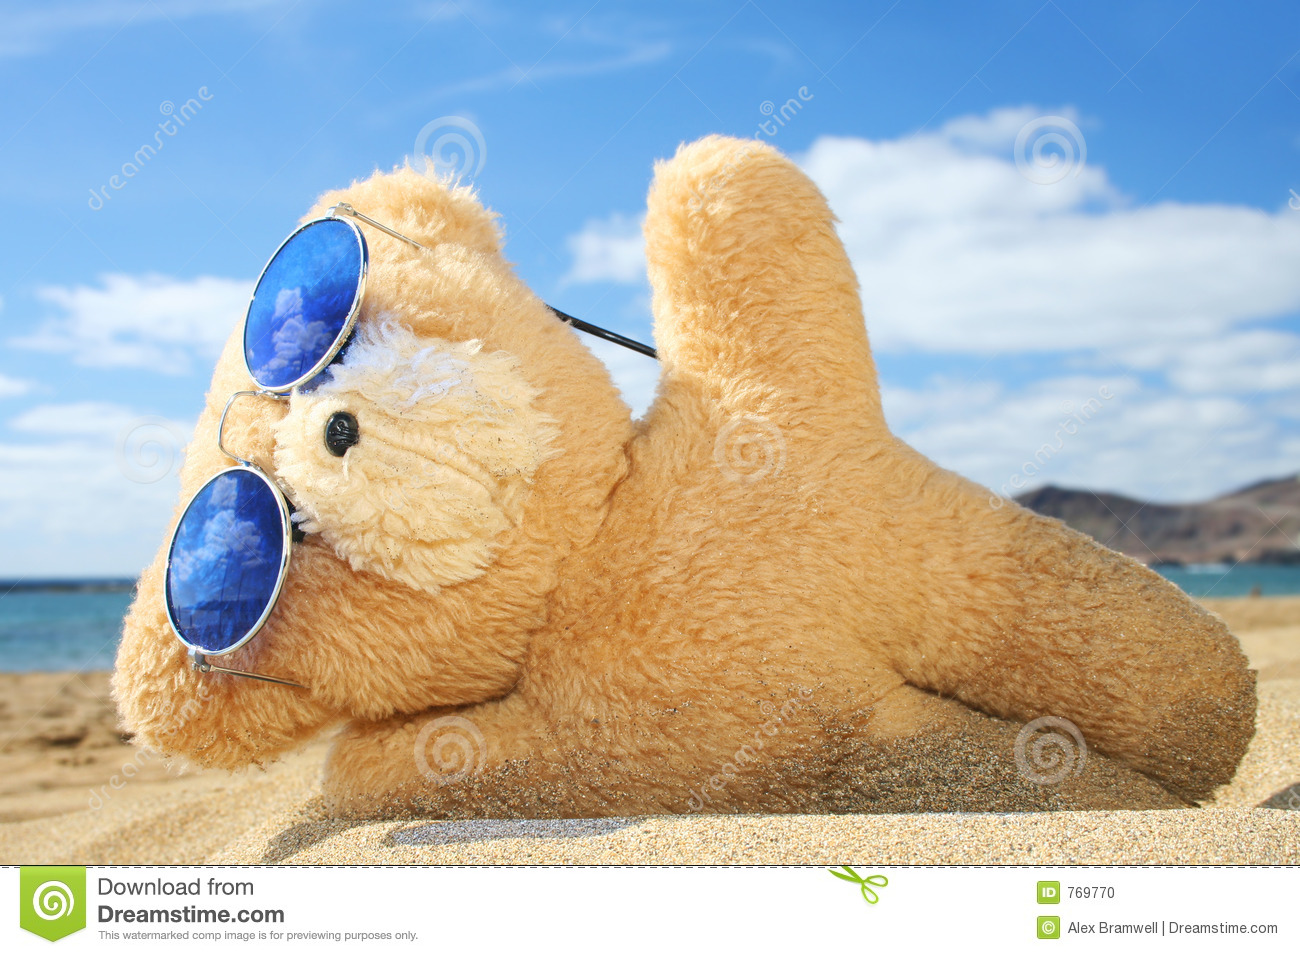 Holiday Teddy Stock Photo - Image: 769770